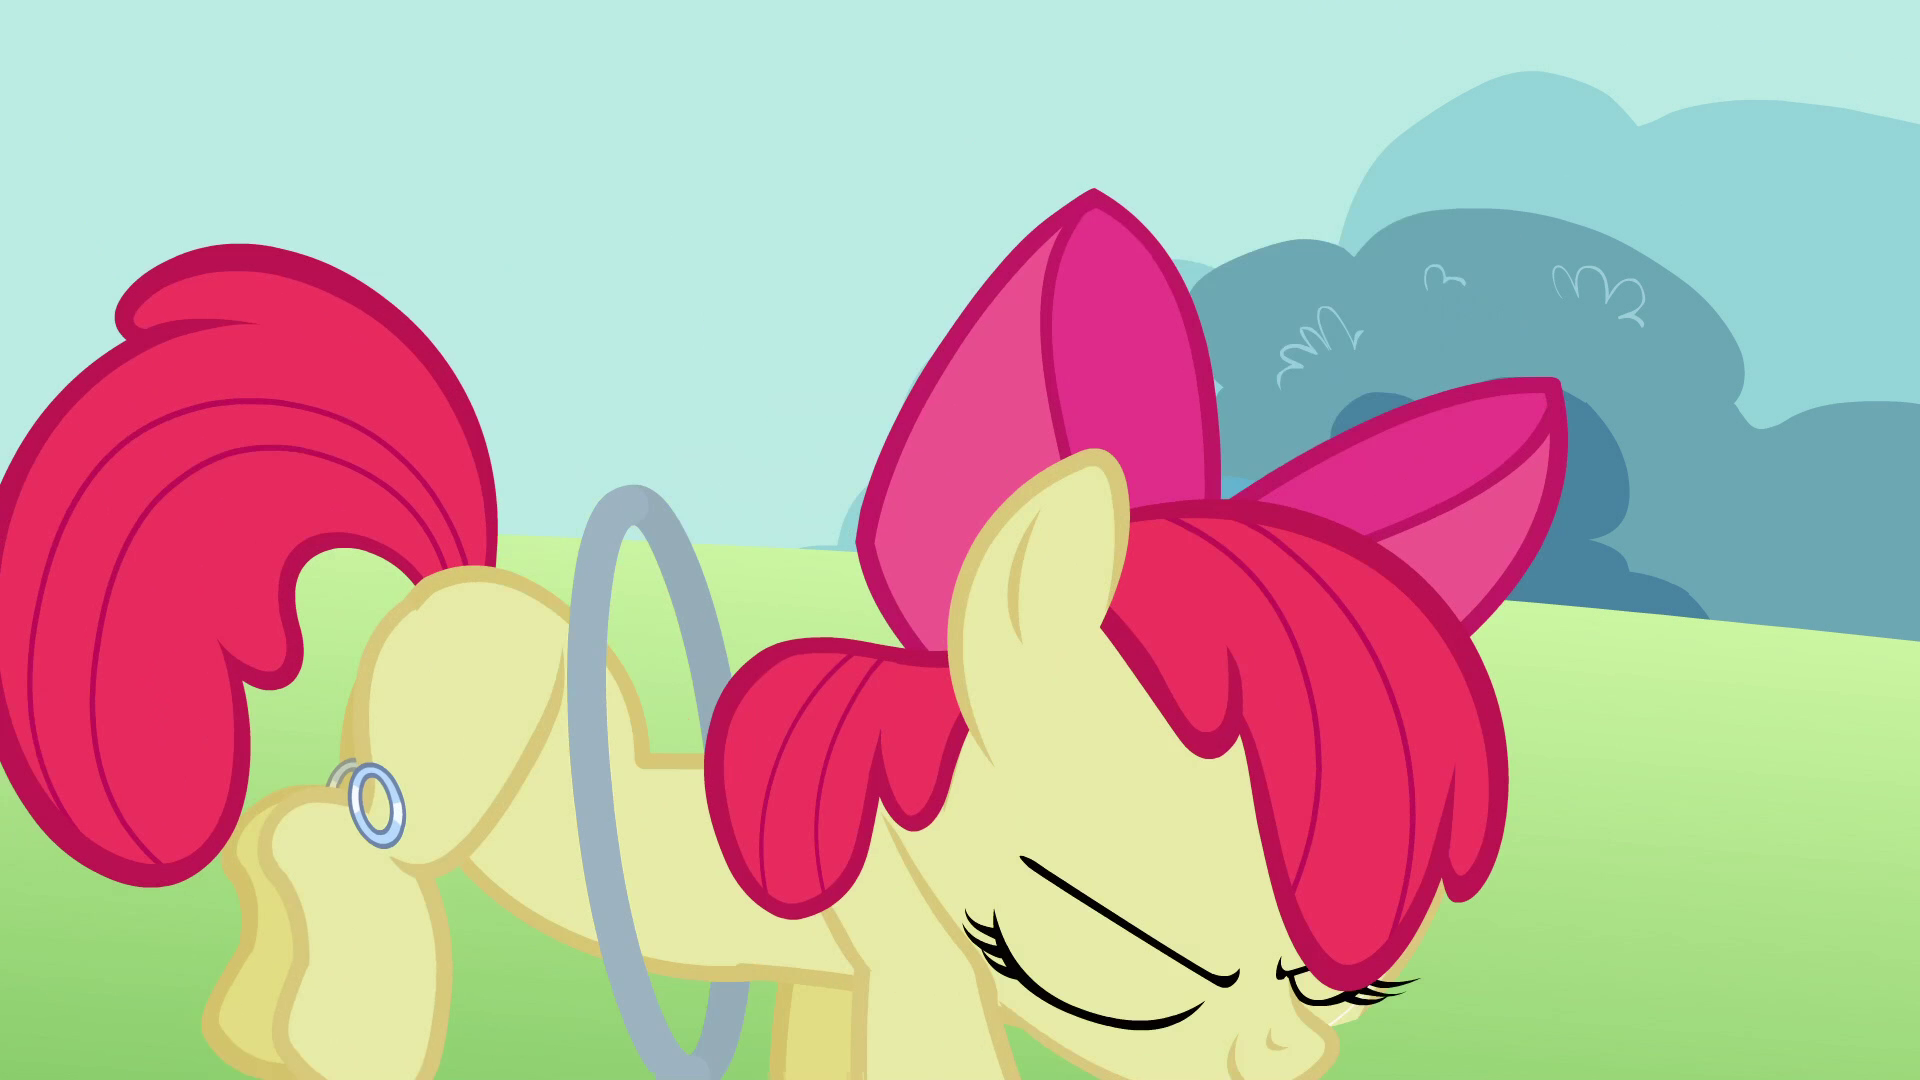 My little pony friendship is magic applebloom cutie mark